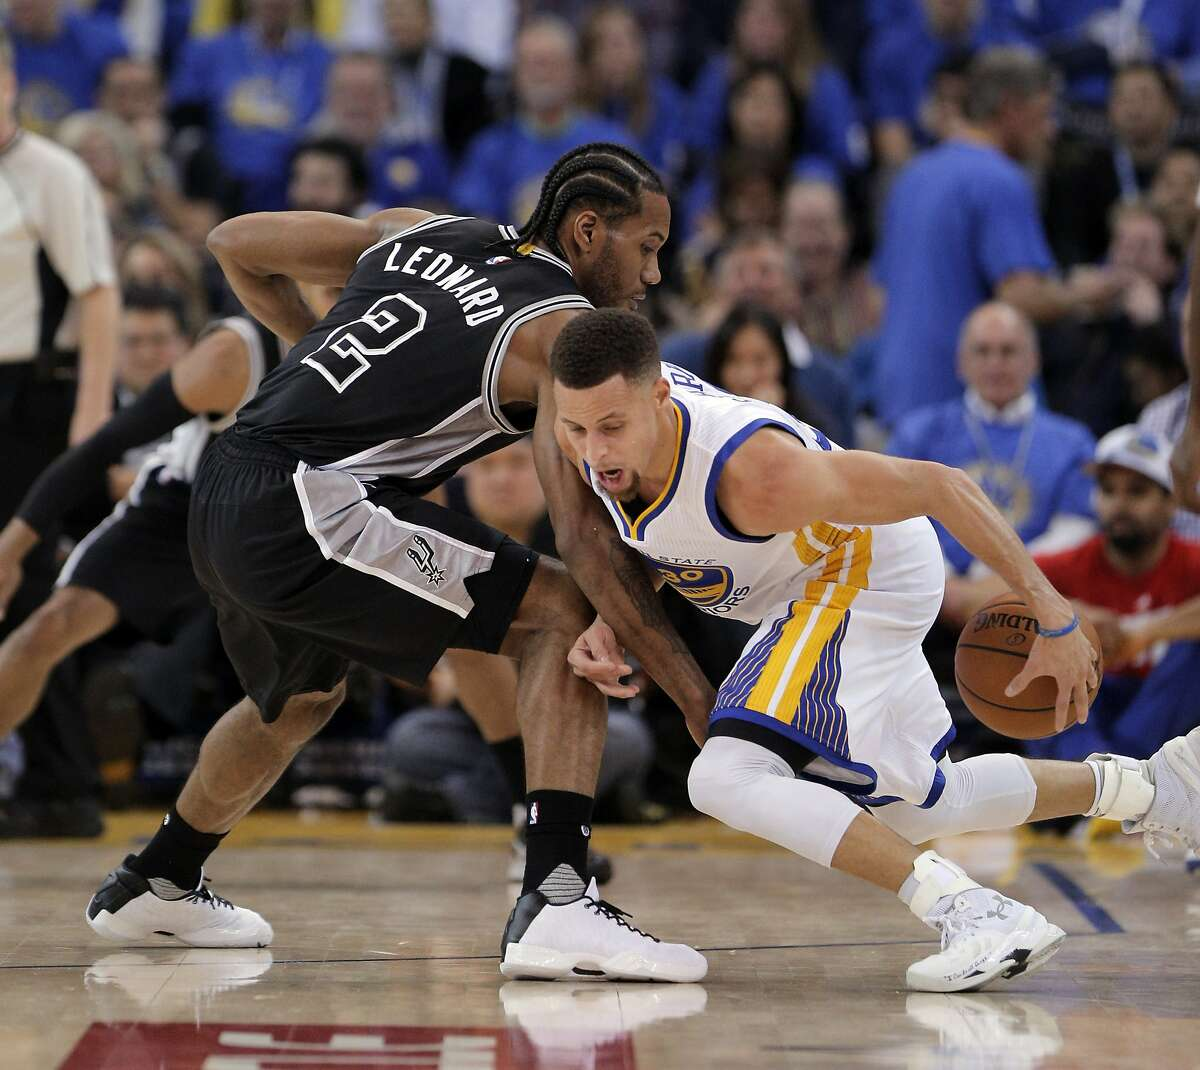 Stephen Curry (30) dribbles around Kawhi Leonard (2) during the first half of the Golden State Warriors game against the San Antonio Spurs at Oracle Arena in Oakland, Calif., on Monday, January 25, 2016.